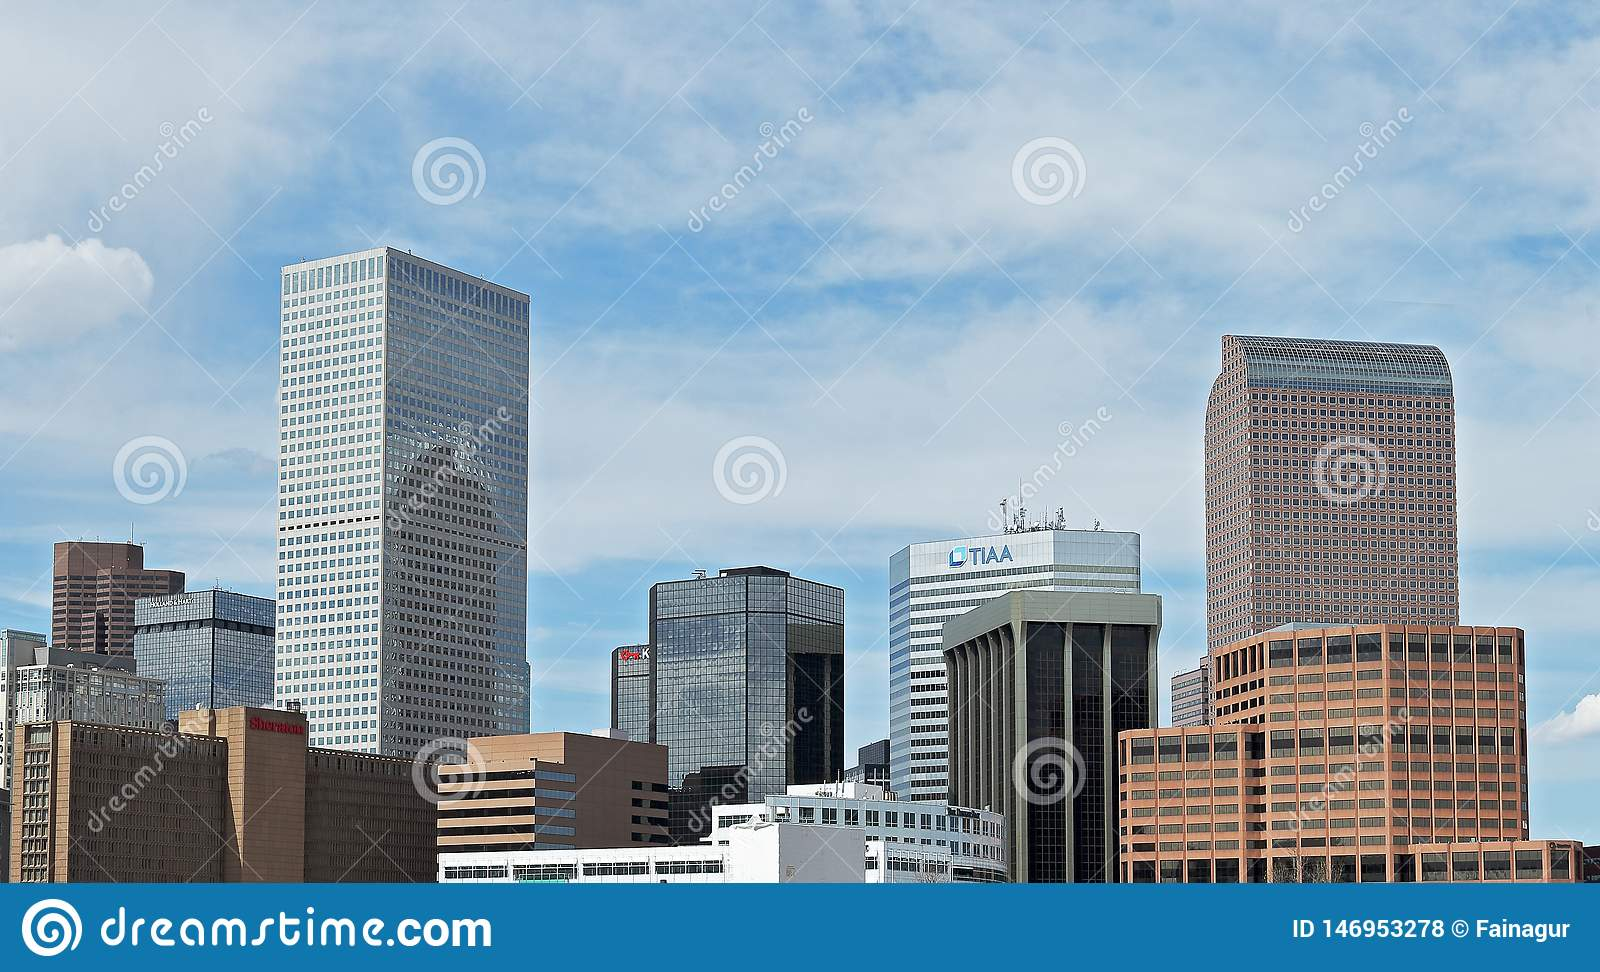 Denver, Colorado, USA, downtown cityscape